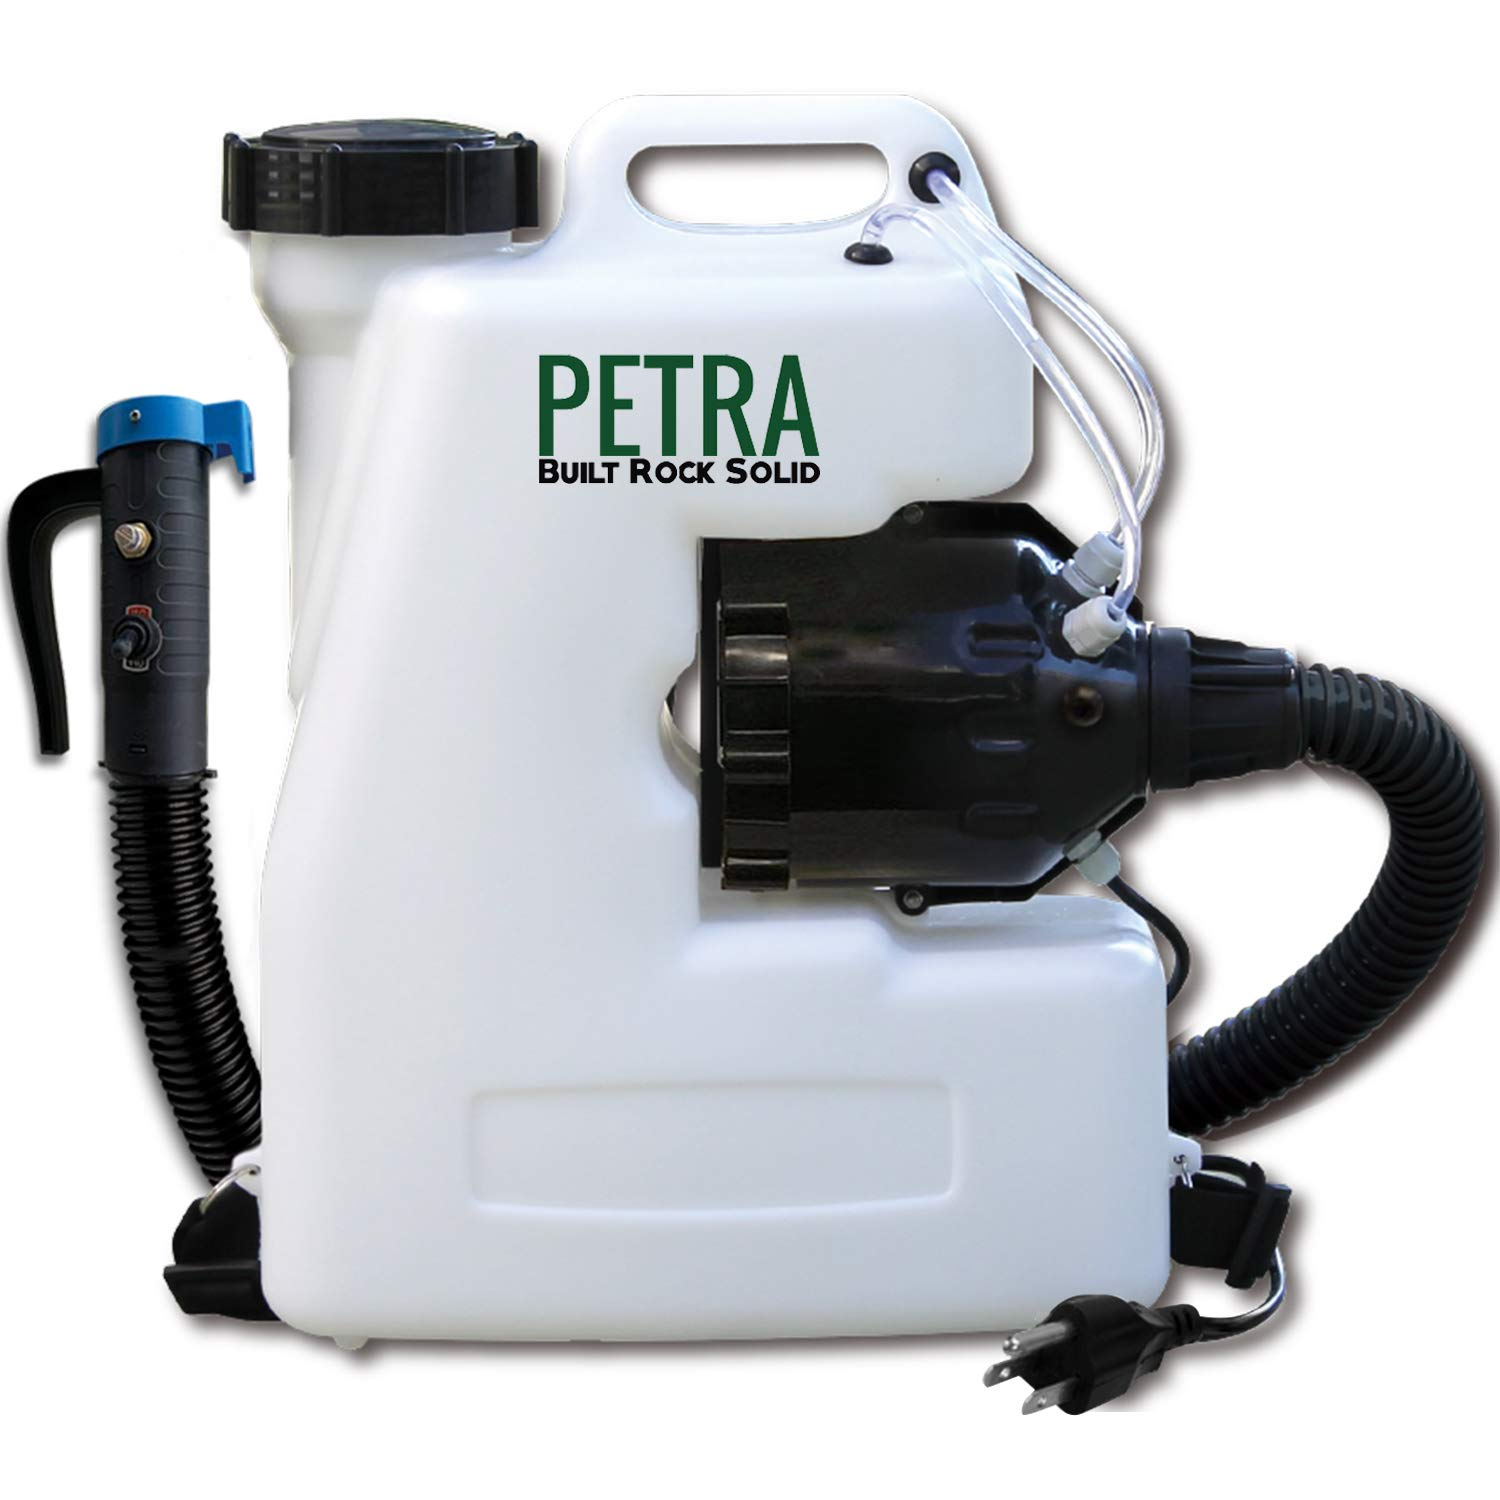 Petra Electric Fogger Atomizer Backpack Sprayer - 4 Gallon Mist Blower with Extended Commercial Hose for Pest Control - Insect, Bug & Mosquito Fogger